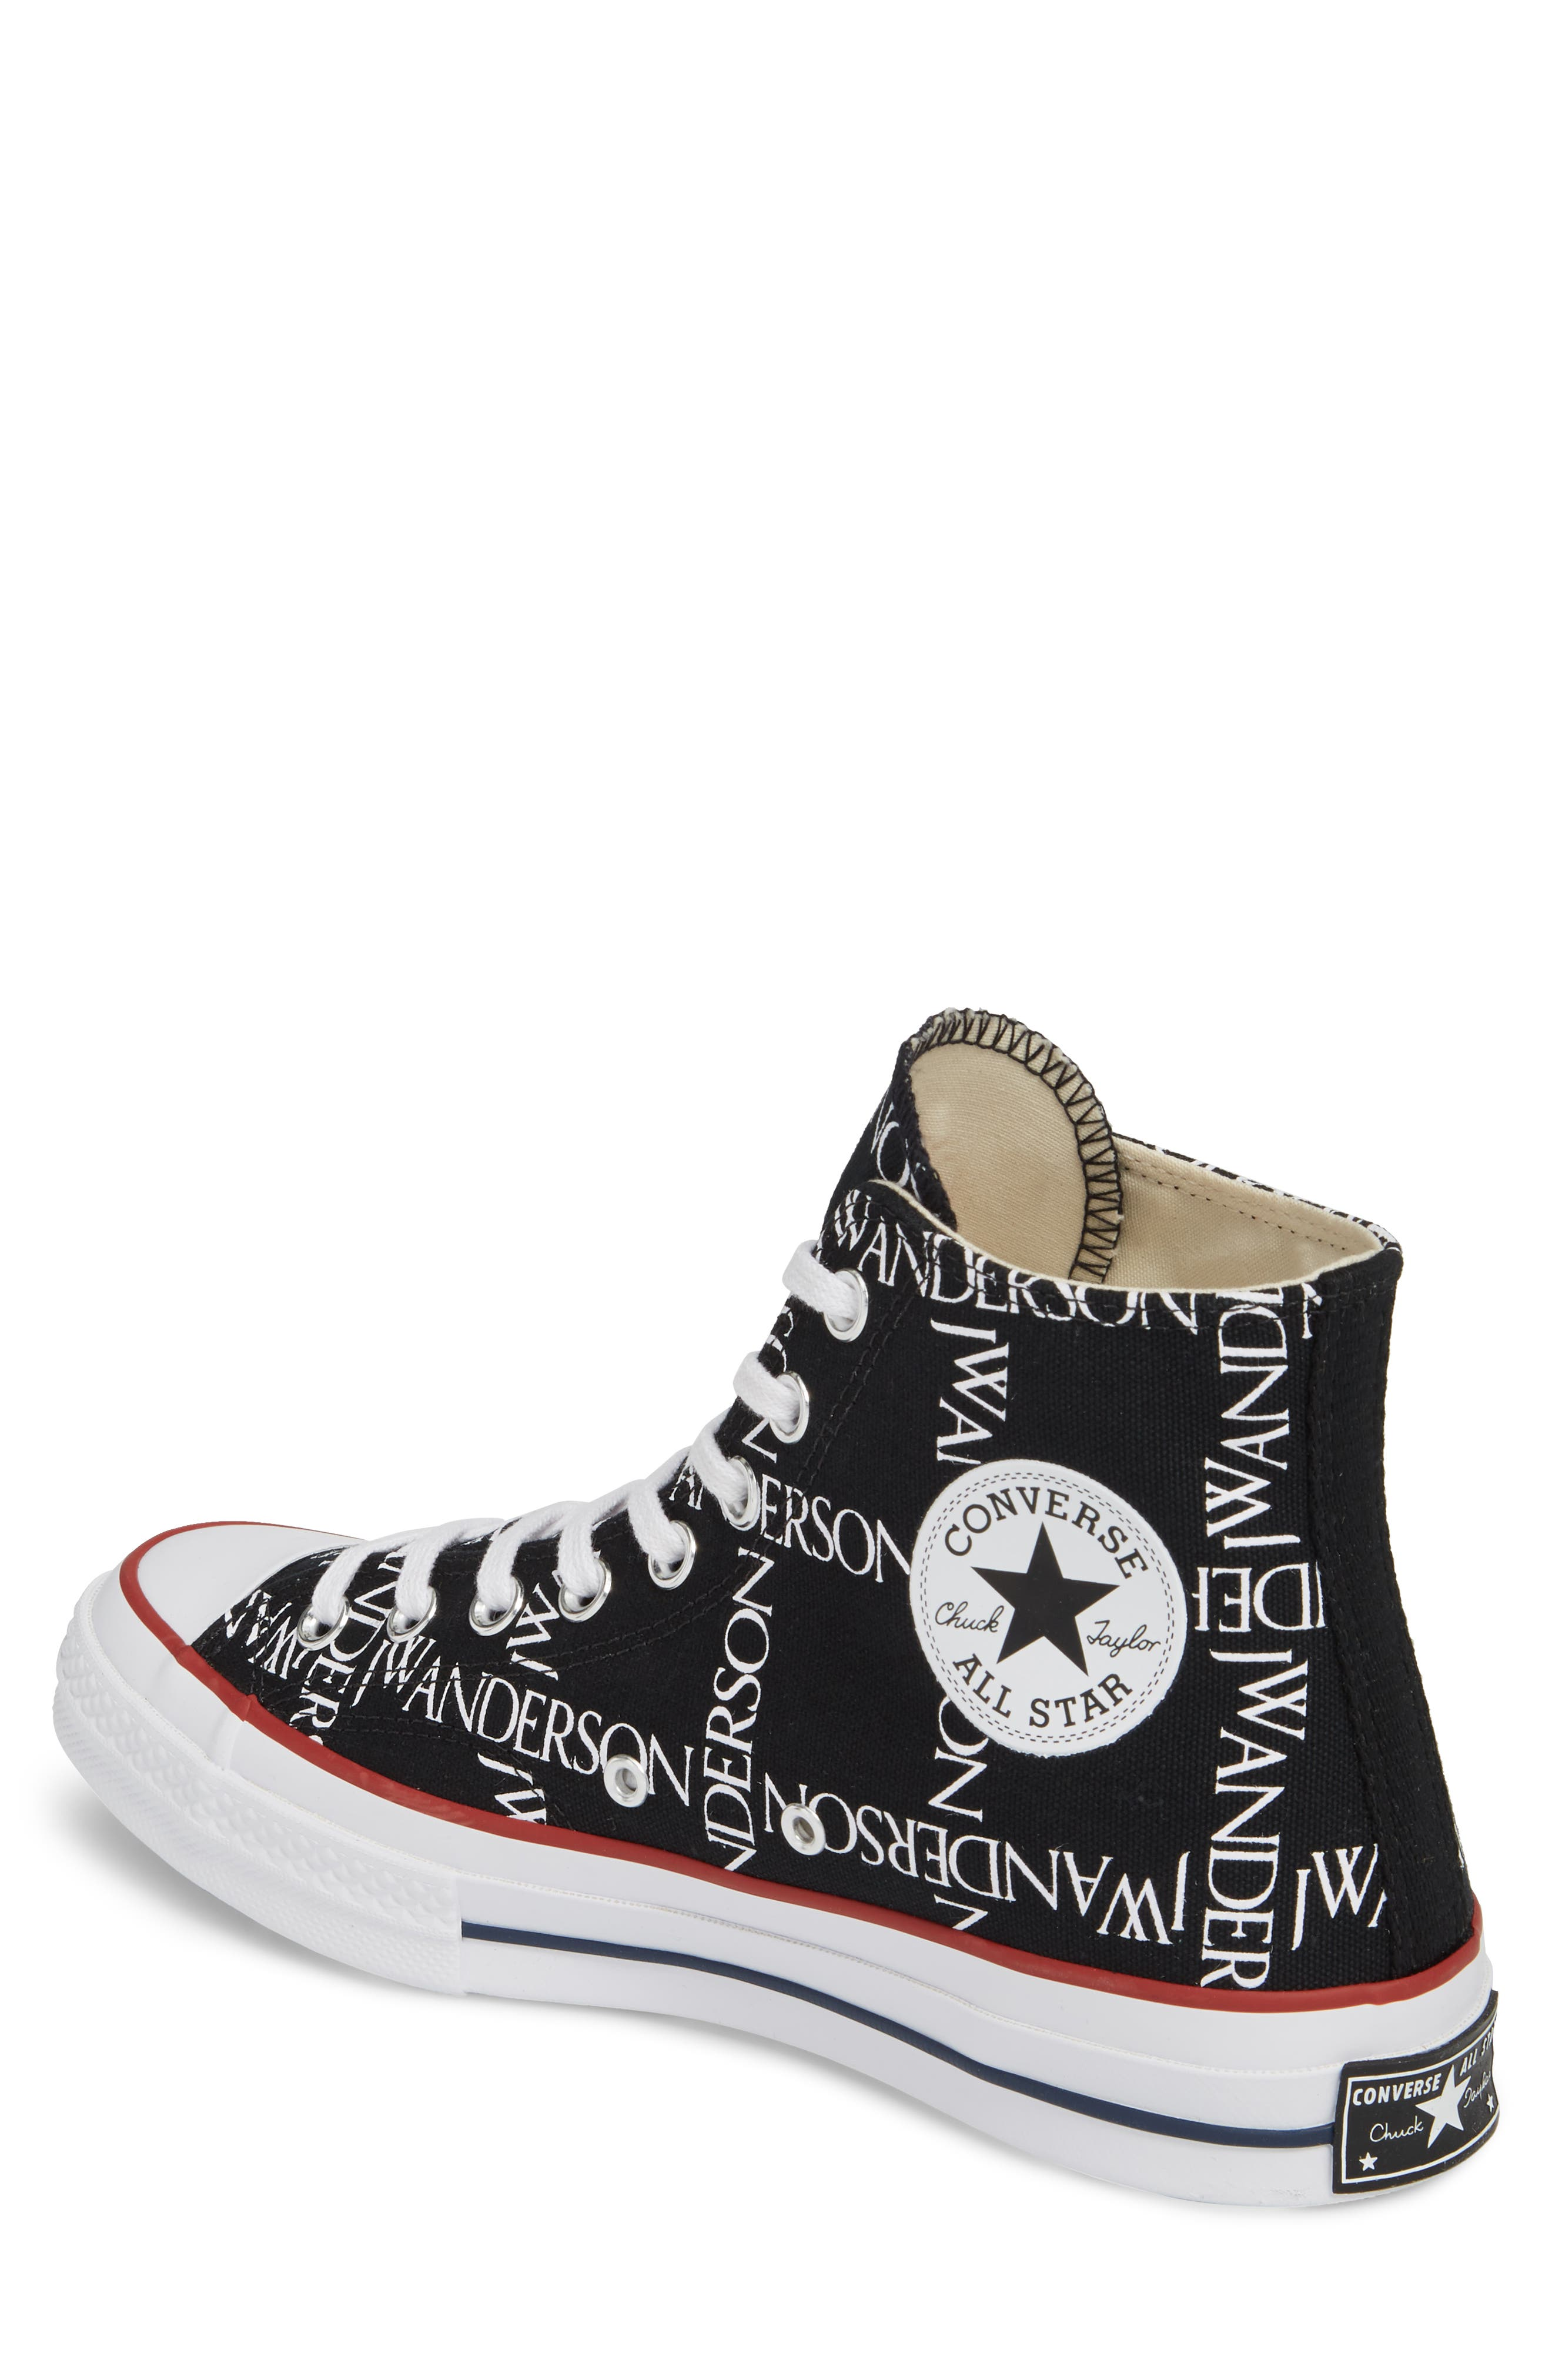 x JW Anderson Chuck Taylor<sup>®</sup> All Star<sup>®</sup> 70 Grid Sneaker,                             Alternate thumbnail 2, color,                             BLACK CANVAS